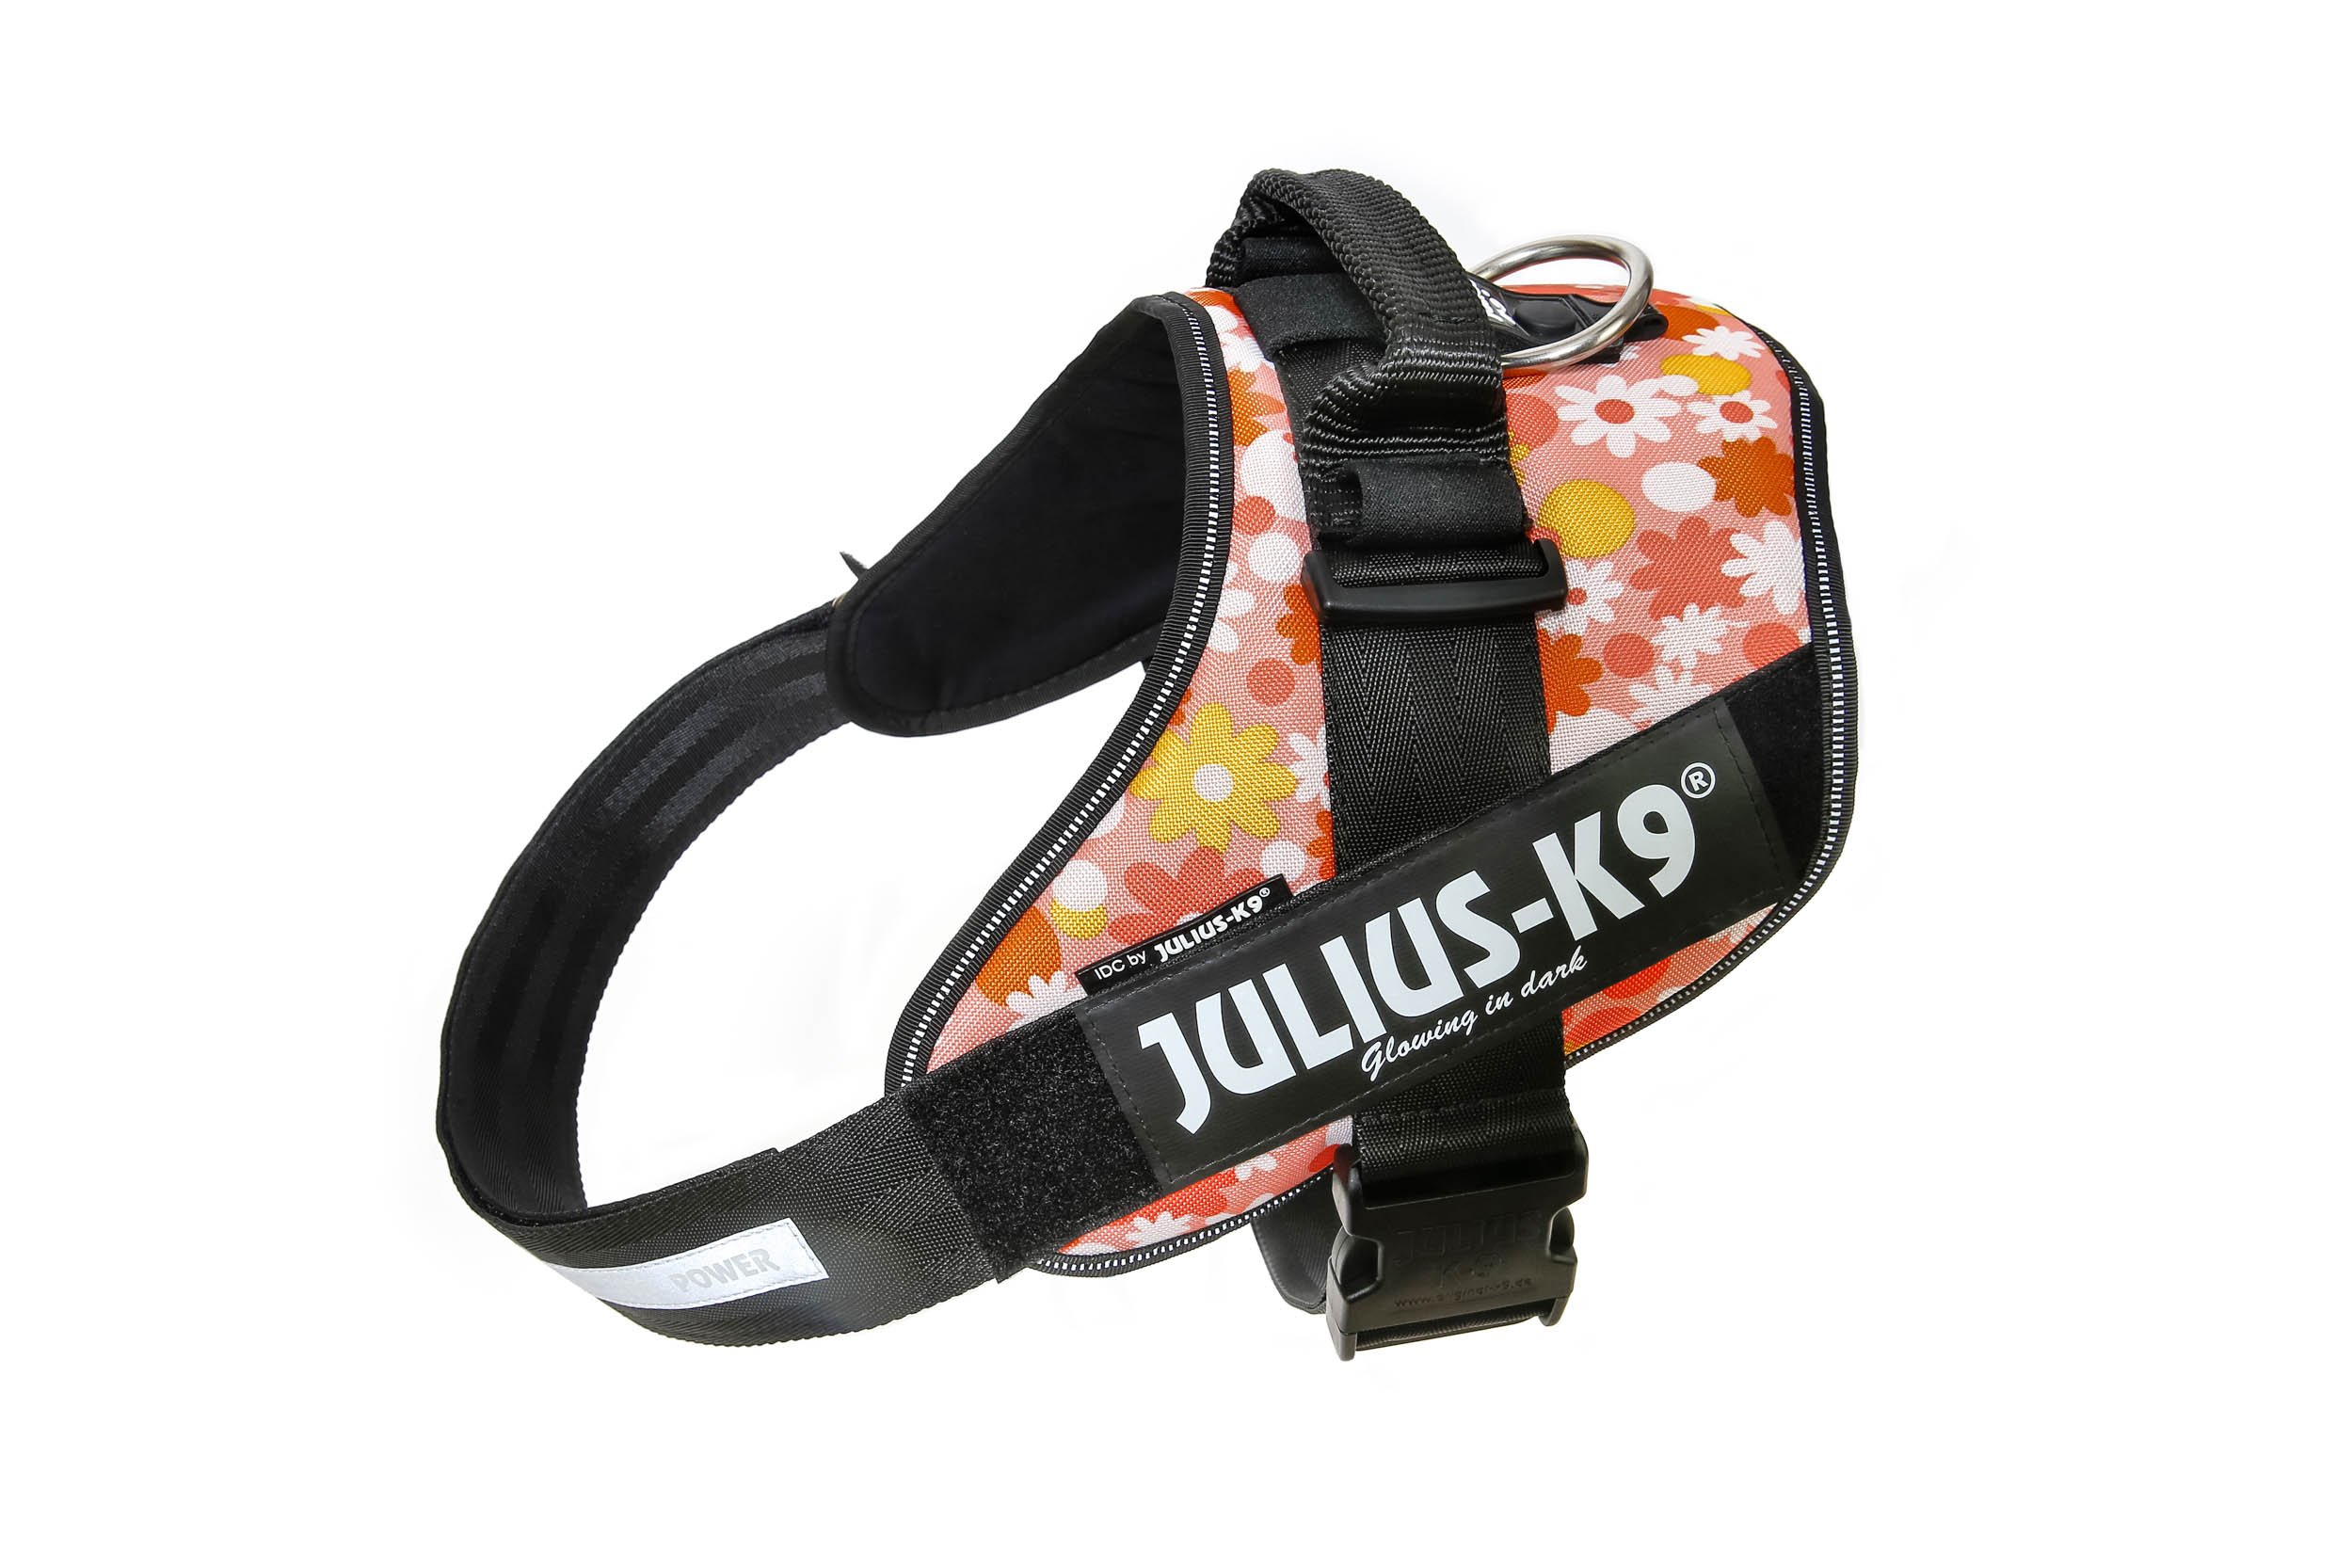 Julius-K9 IDC-Power Harness, Pink with Flowers, Size: Mini/49-67 cm